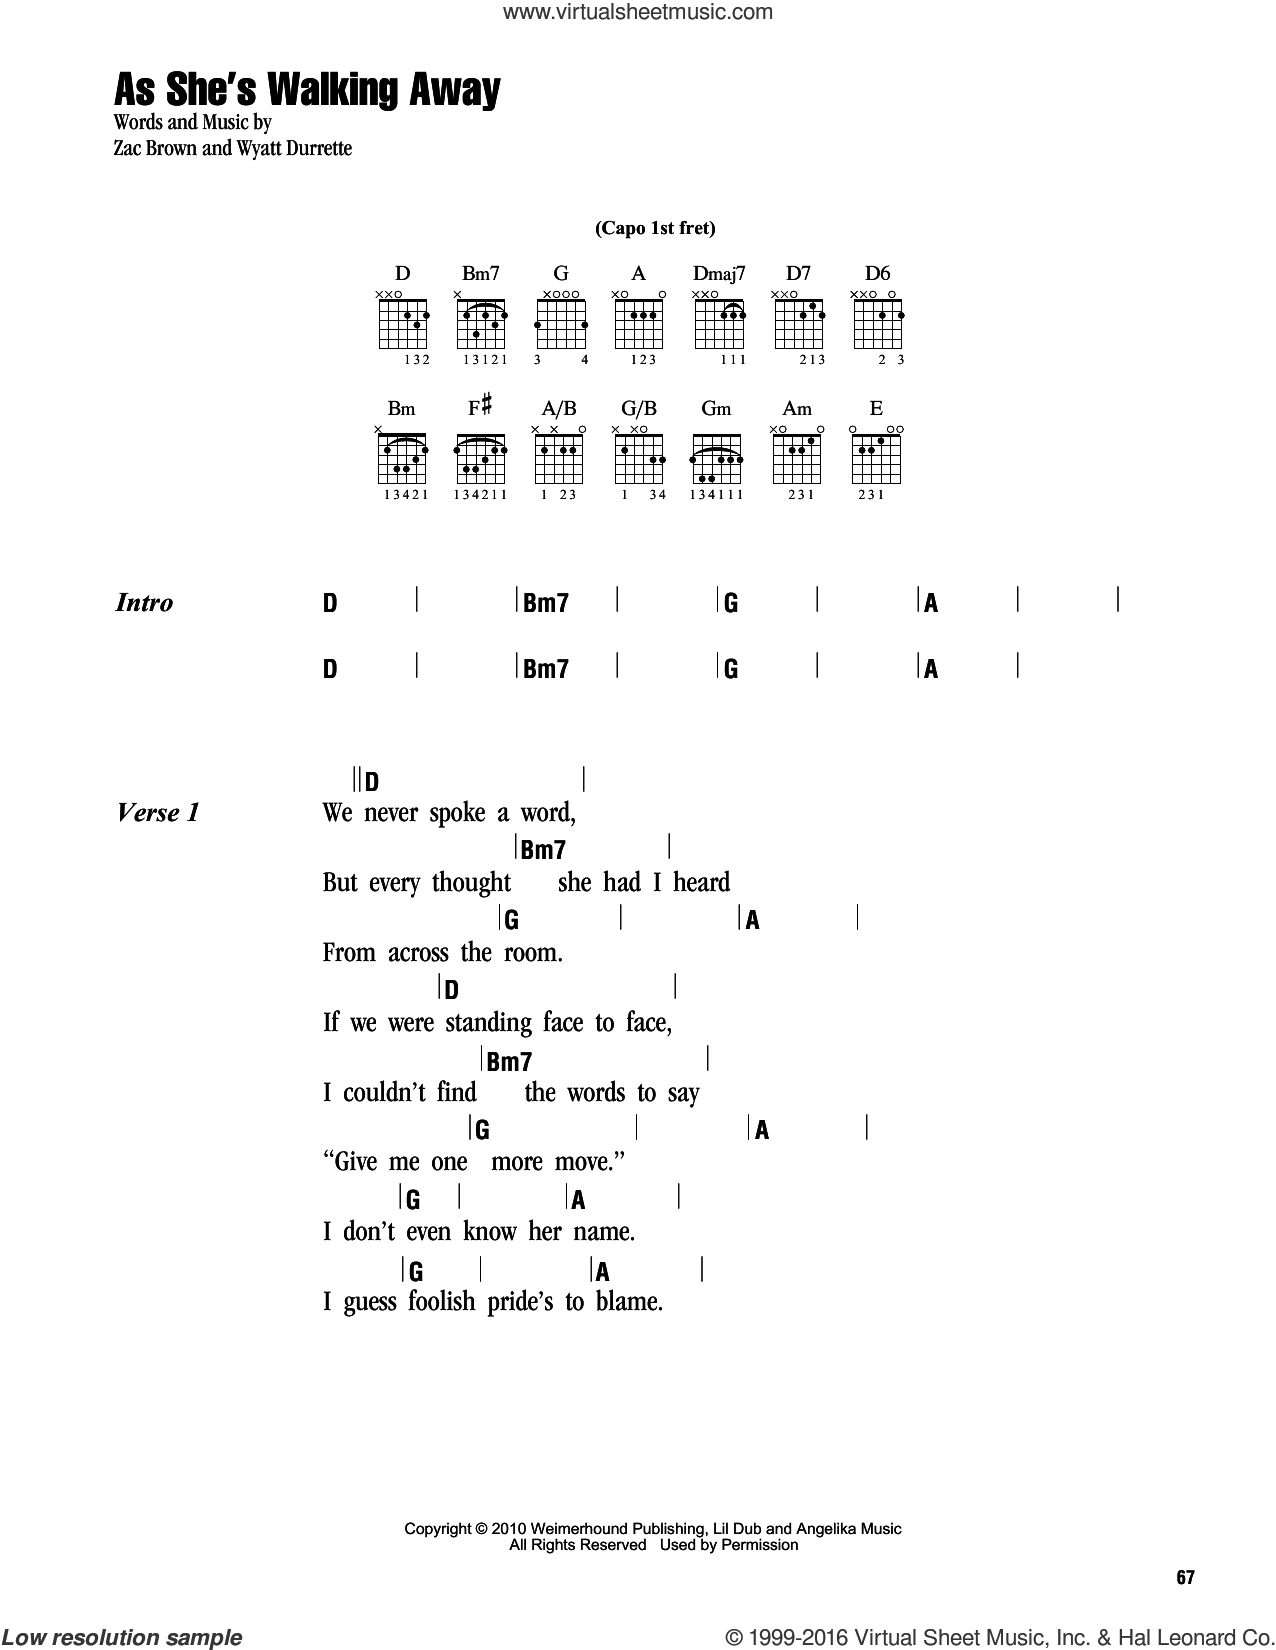 As She's Walking Away sheet music for guitar (chords) by Zac Brown and Wyatt Durrette. Score Image Preview.